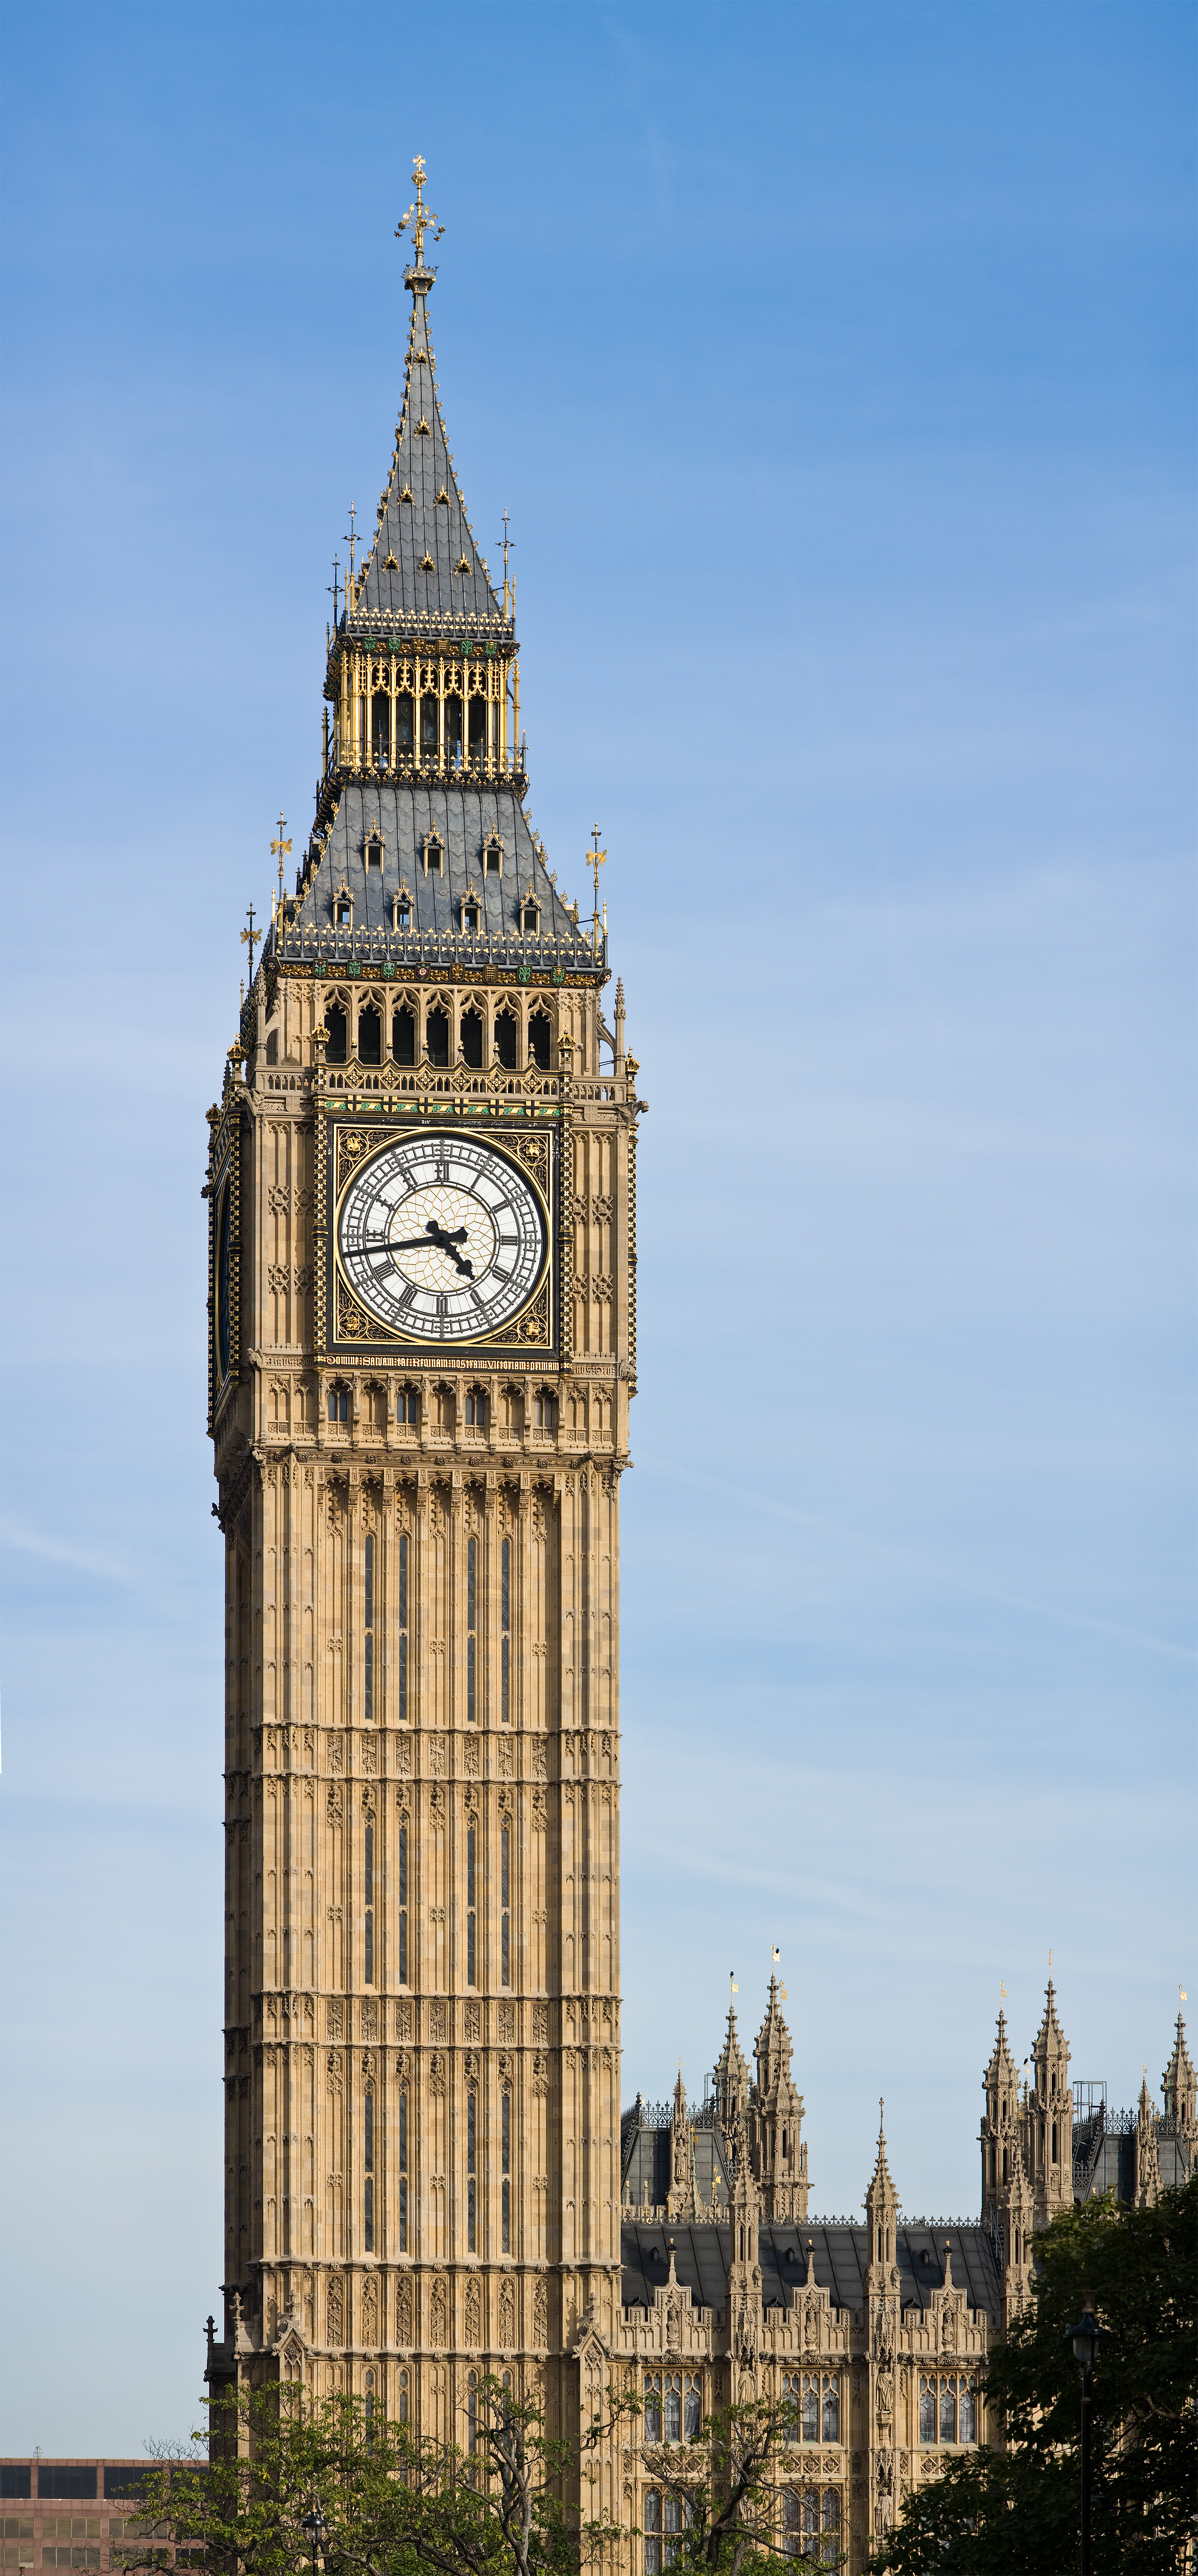 File:Clock Tower - Palace of Westminster, London ...